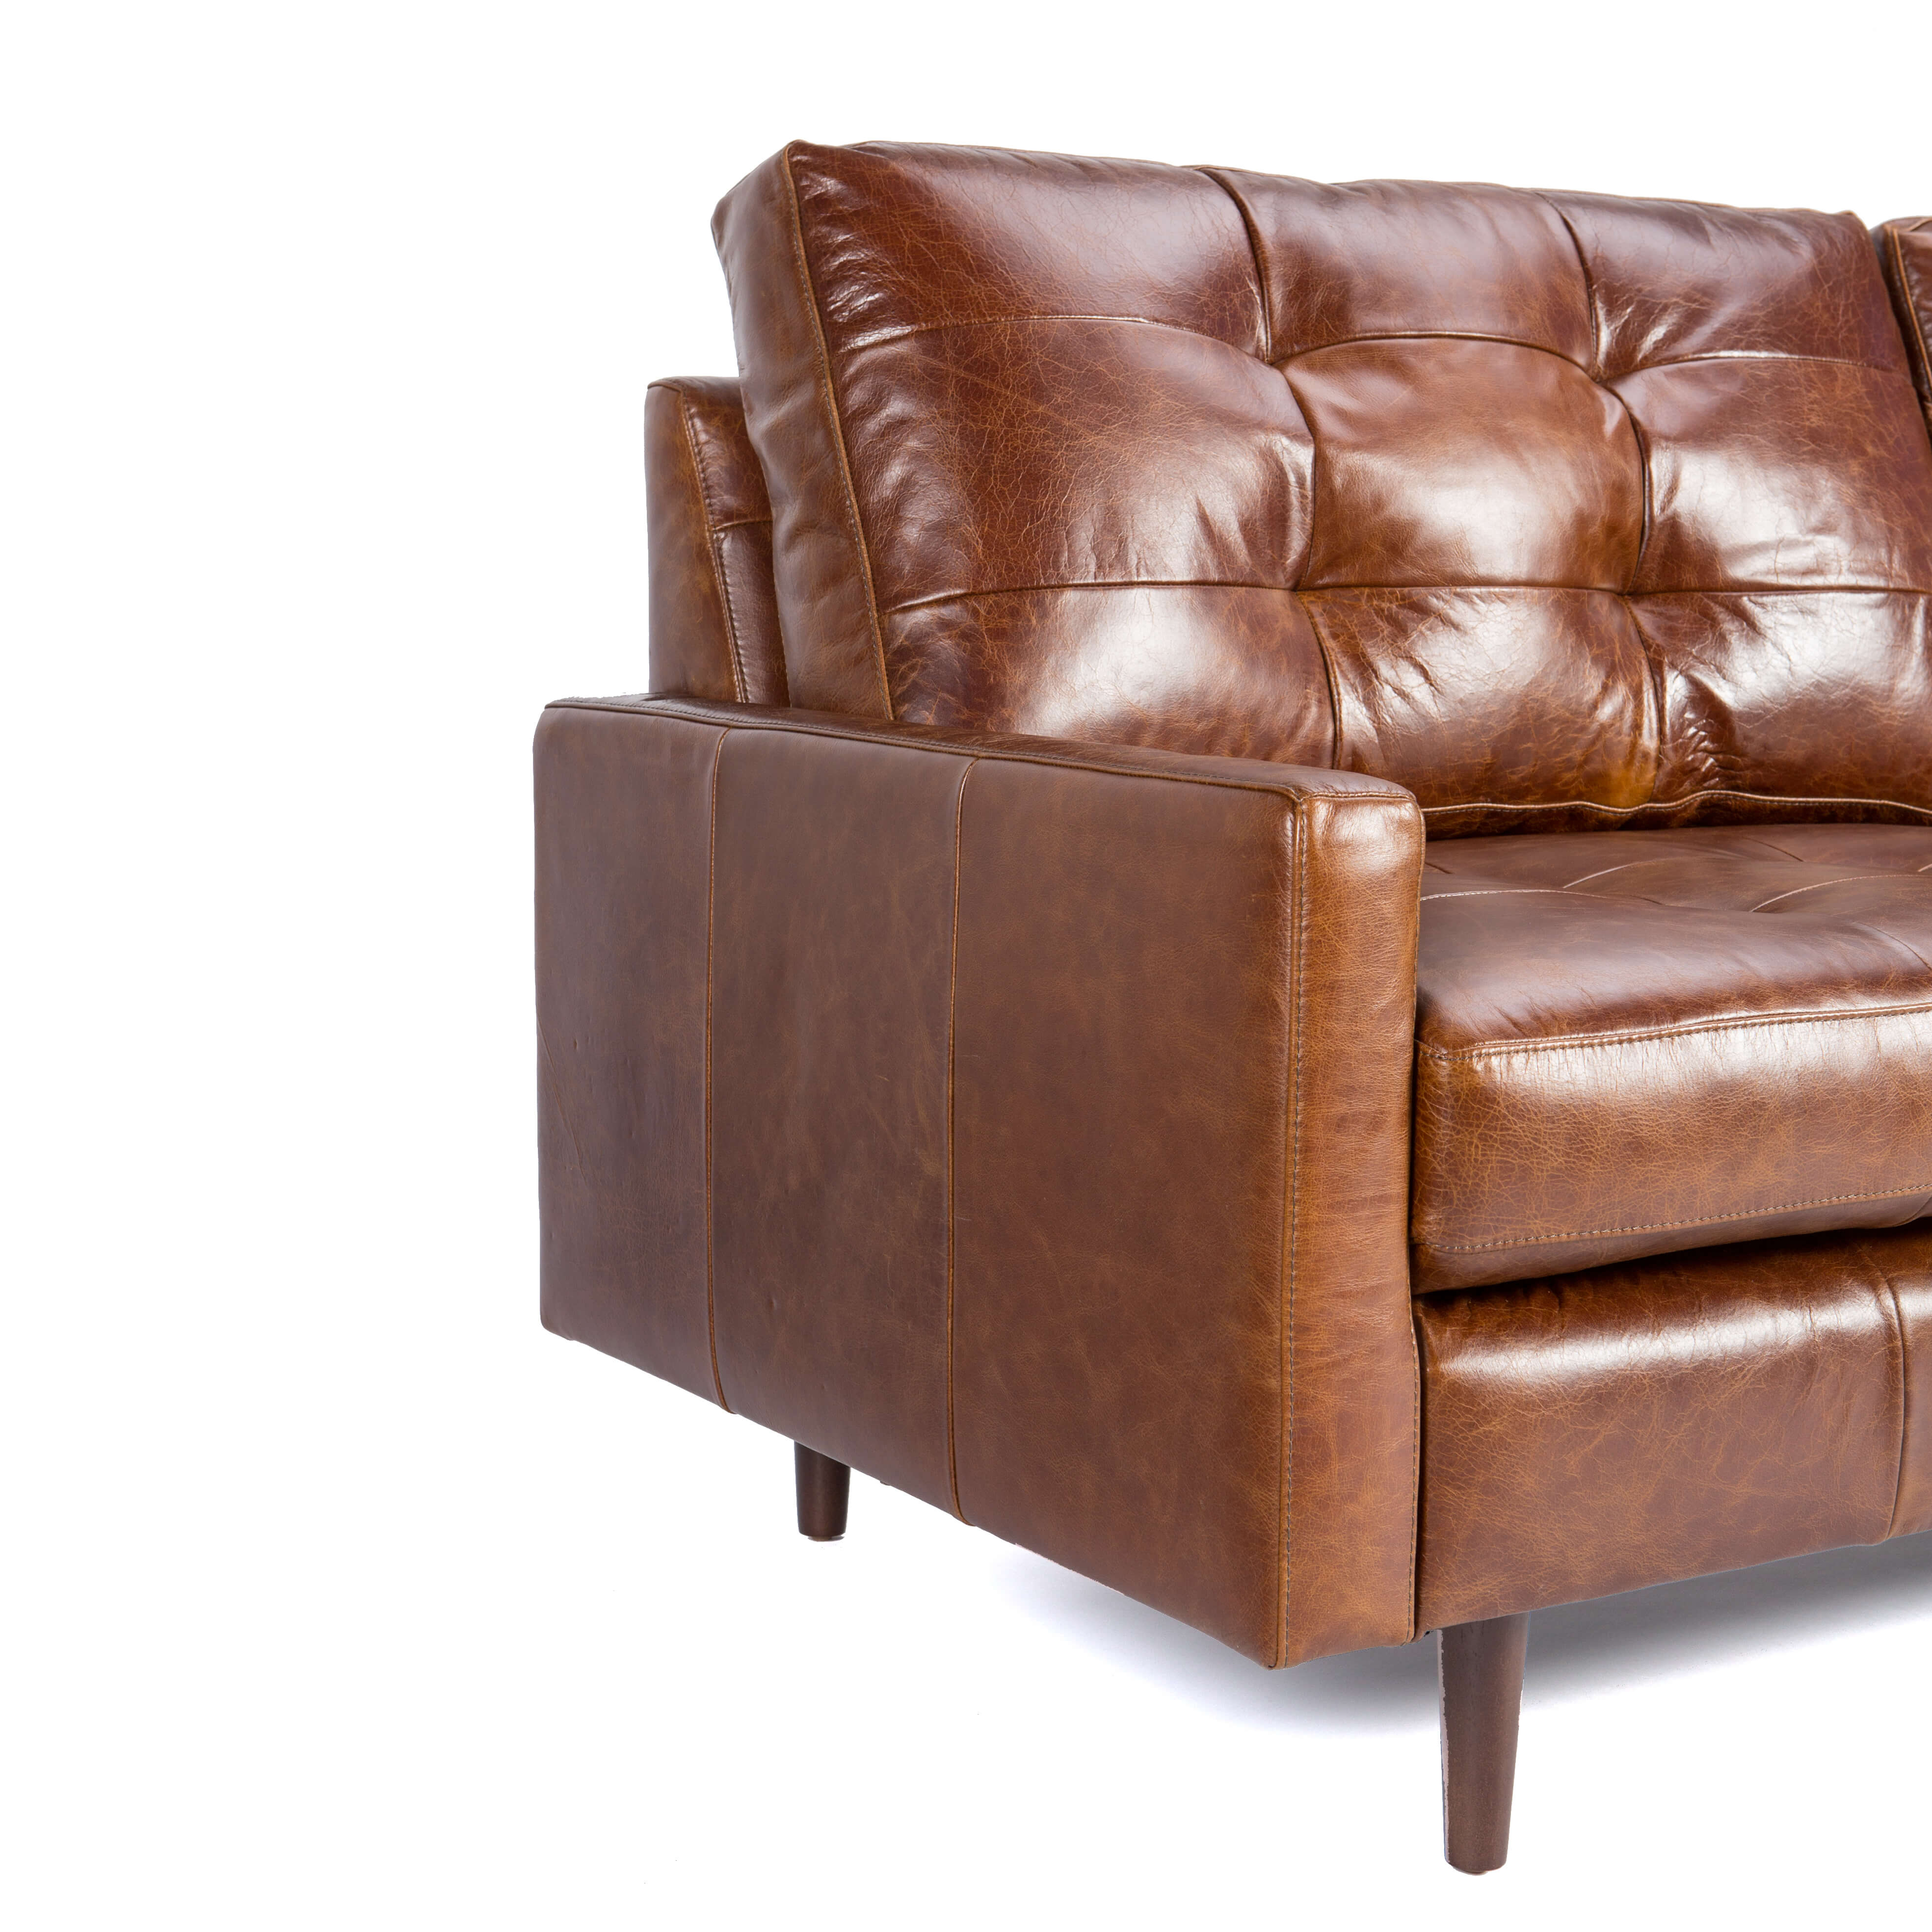 Leather Sofa With Tufted Back Cushion – Andrew – Zillo + Hutch Inside Andrew Leather Sofa Chairs (View 5 of 25)